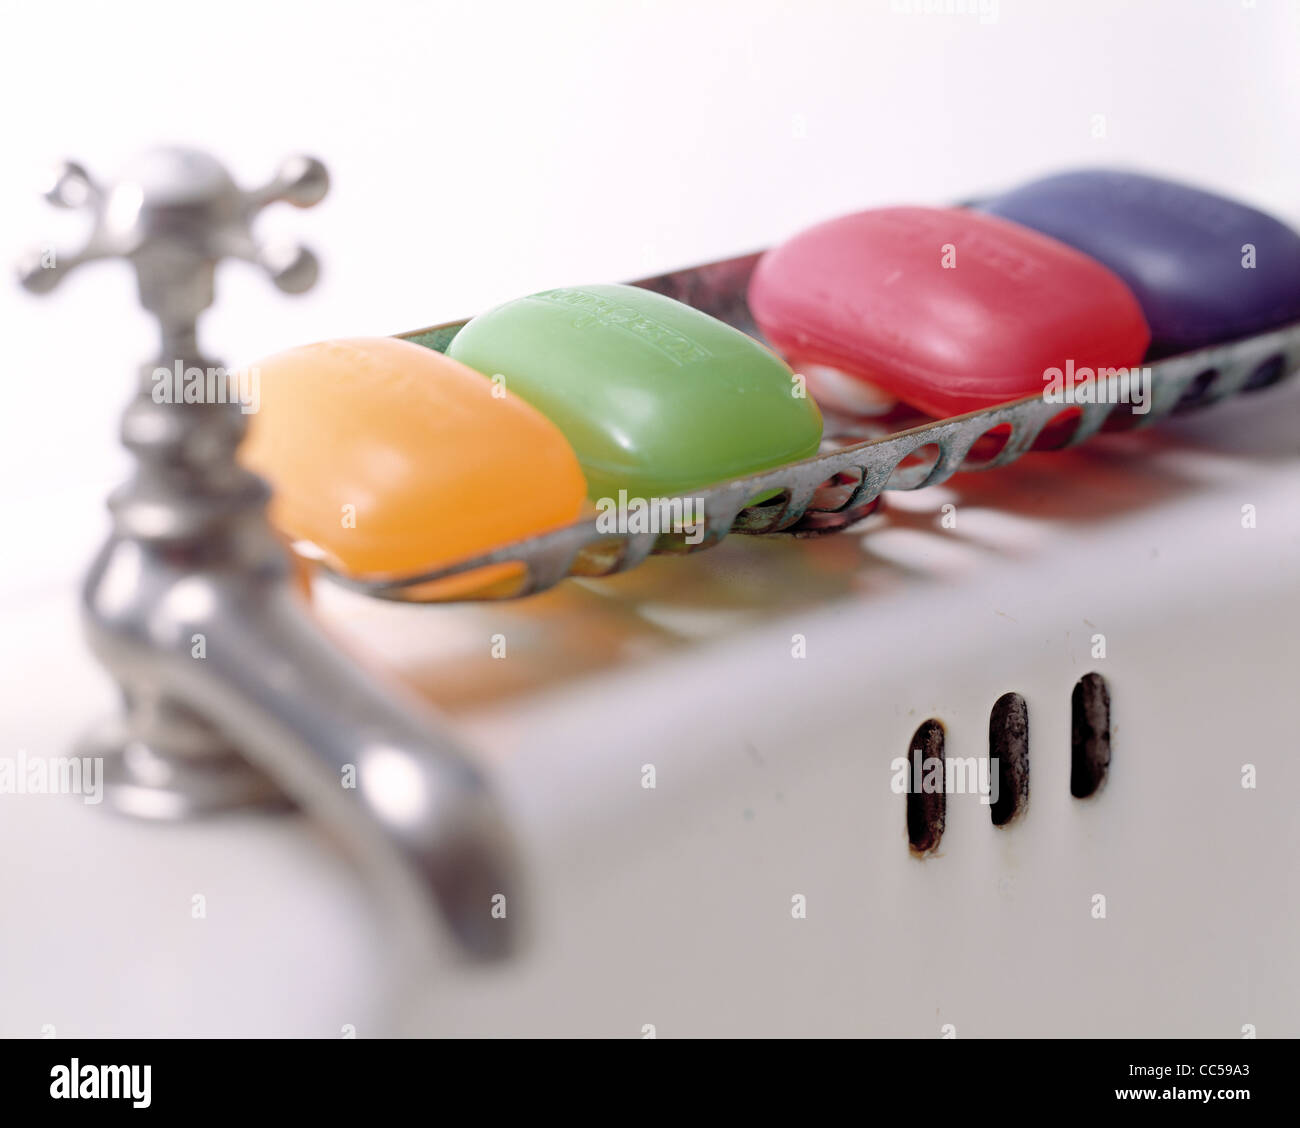 Rainbow of Glycerin Soaps and Faucet - Stock Image